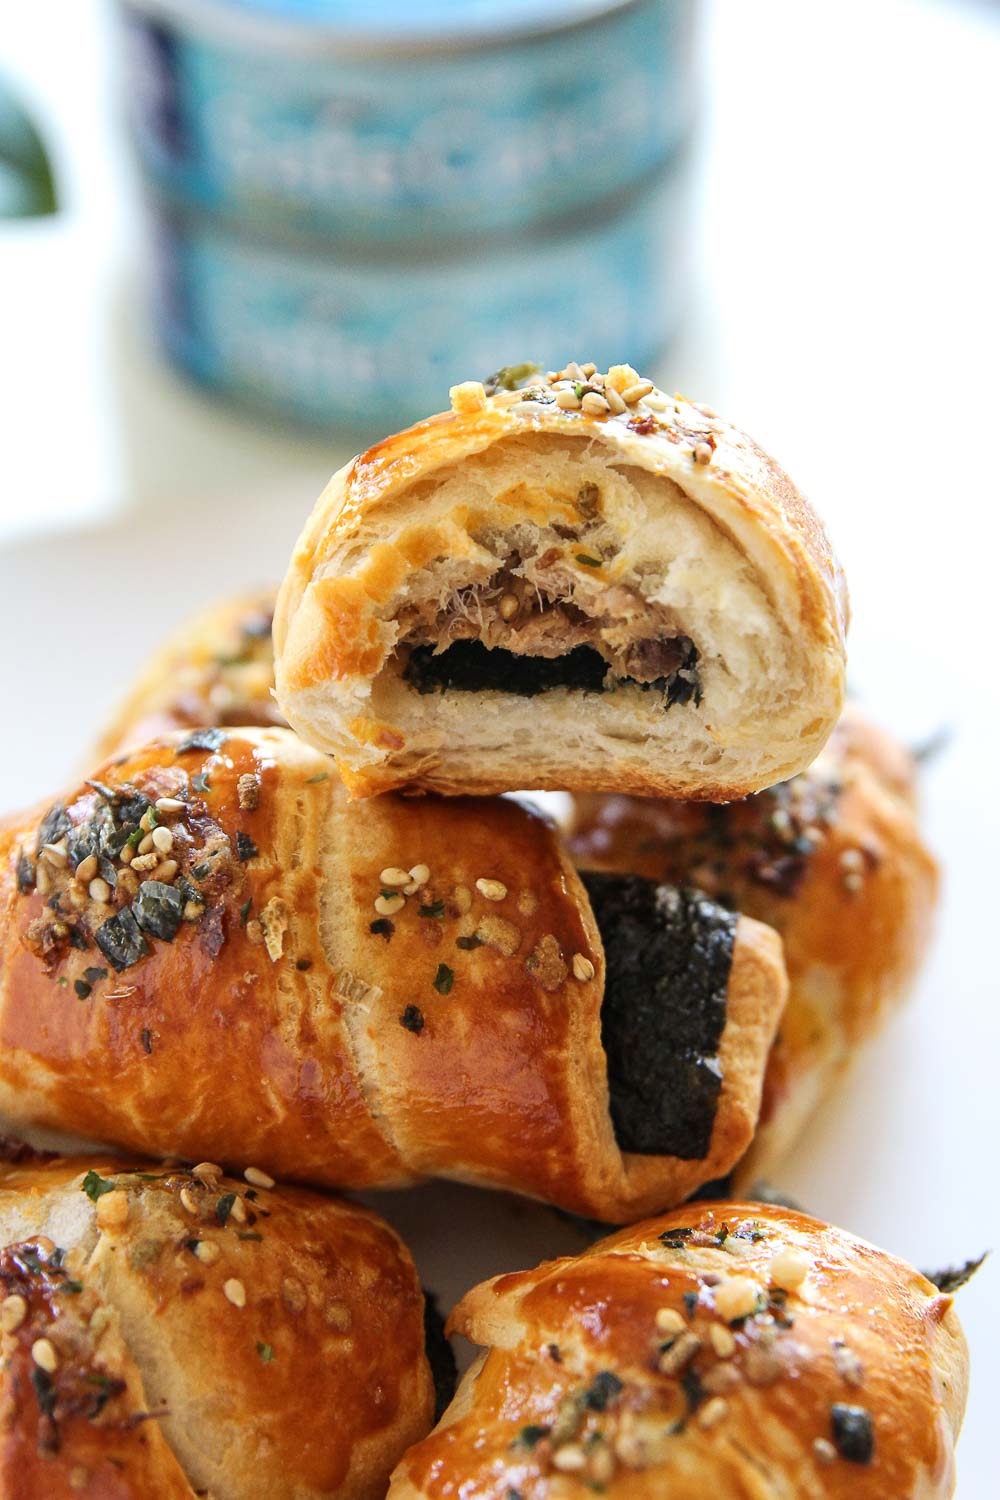 These delicious tuna croissants are the perfect treat for breakfast time or appetizer for your next party. With a little time and tuna, you can make this savory breakfast that will get your morning off to a fun start.